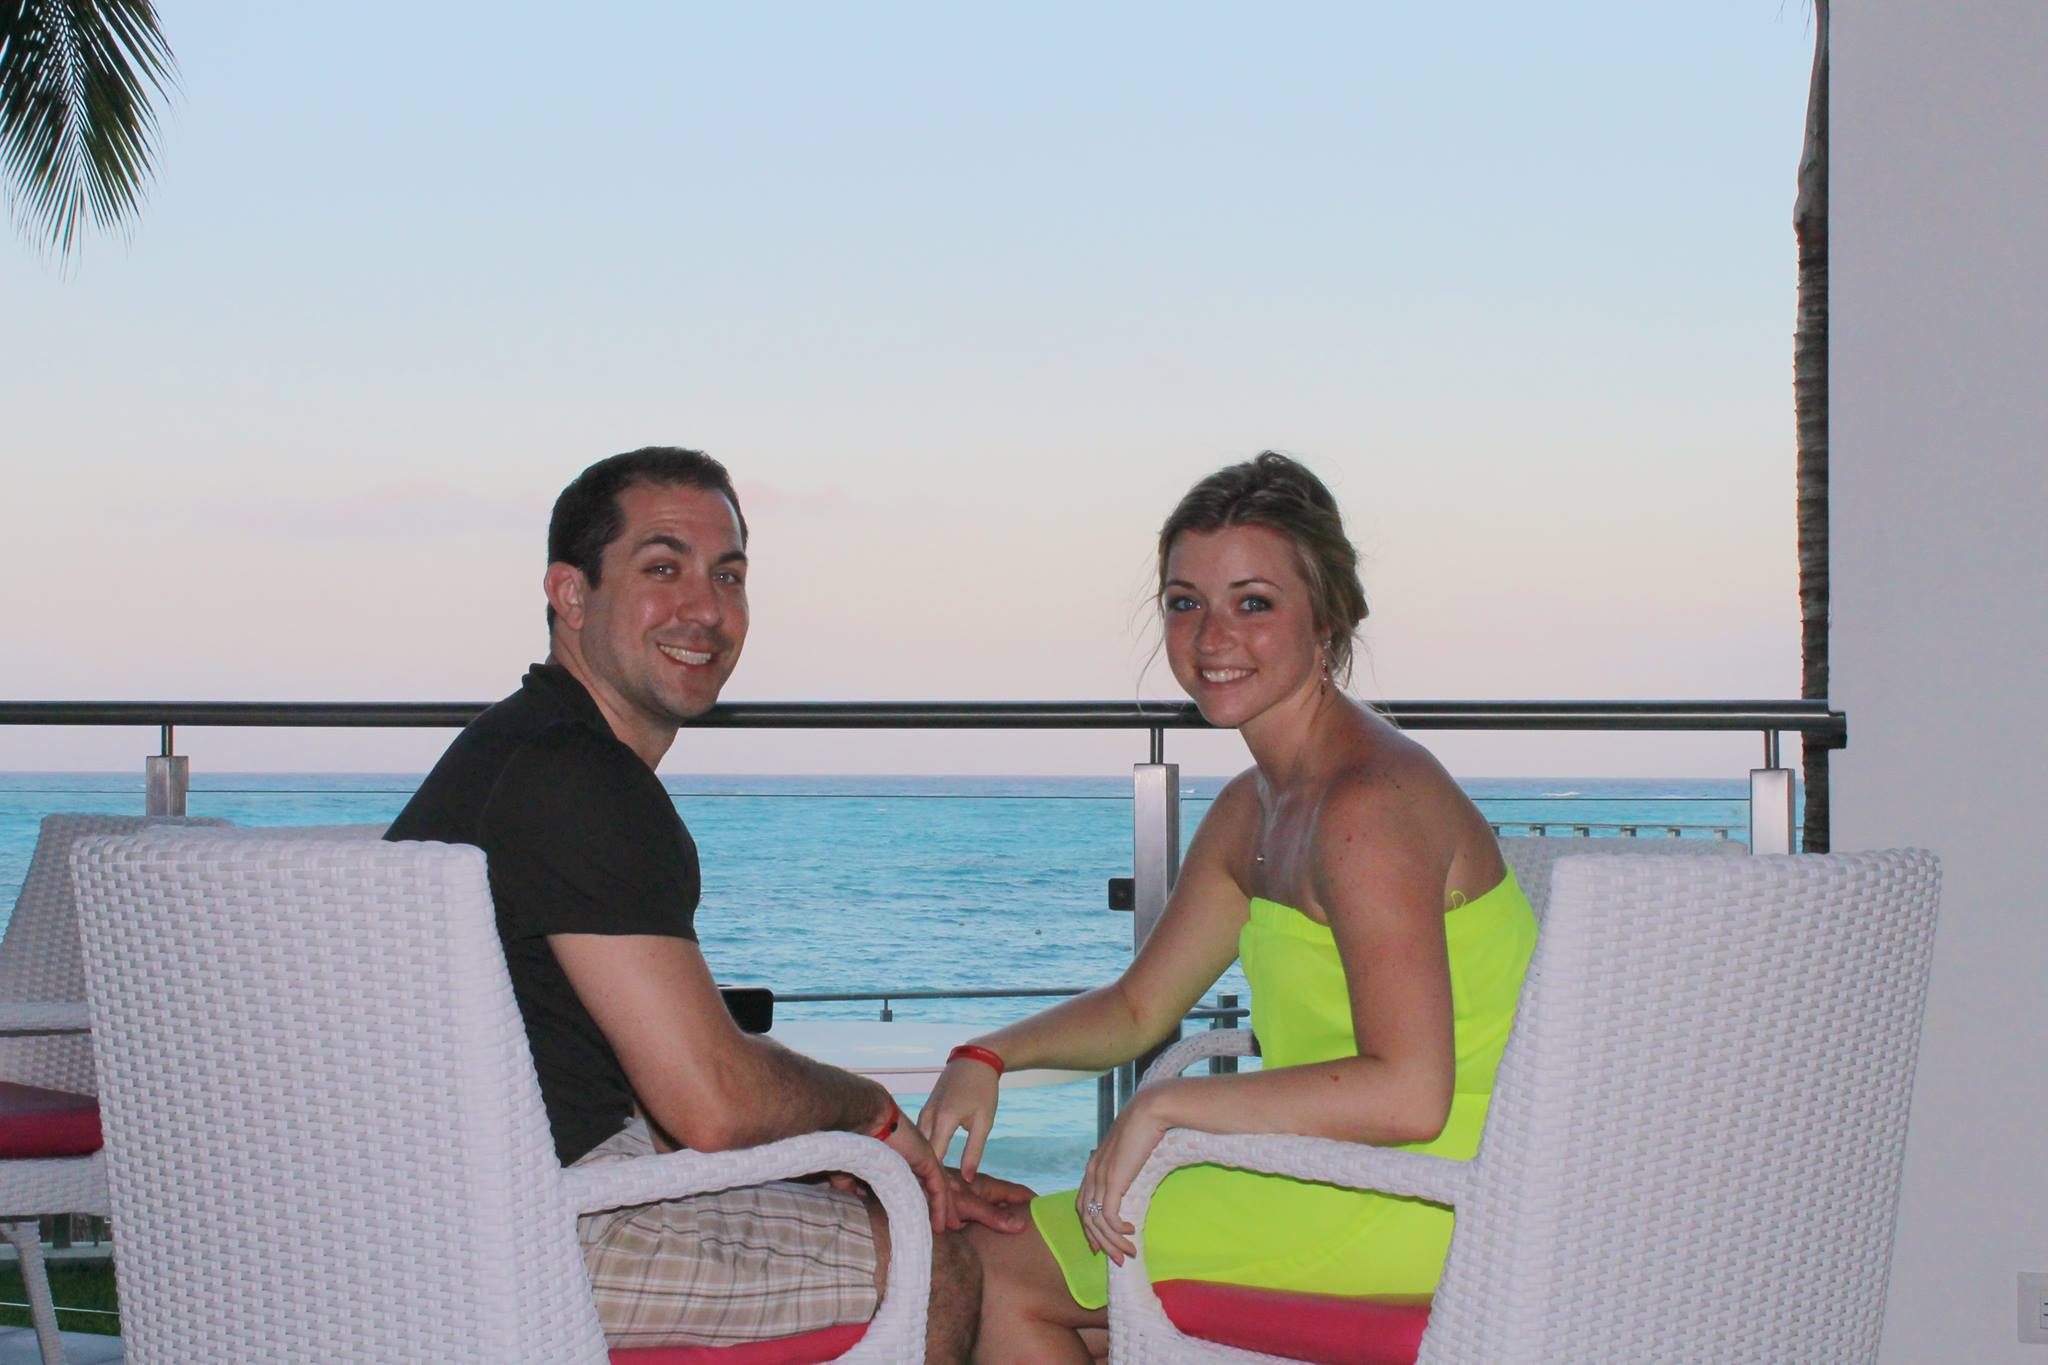 Honeymoon bliss, grateful for our life experiences that brought us together.